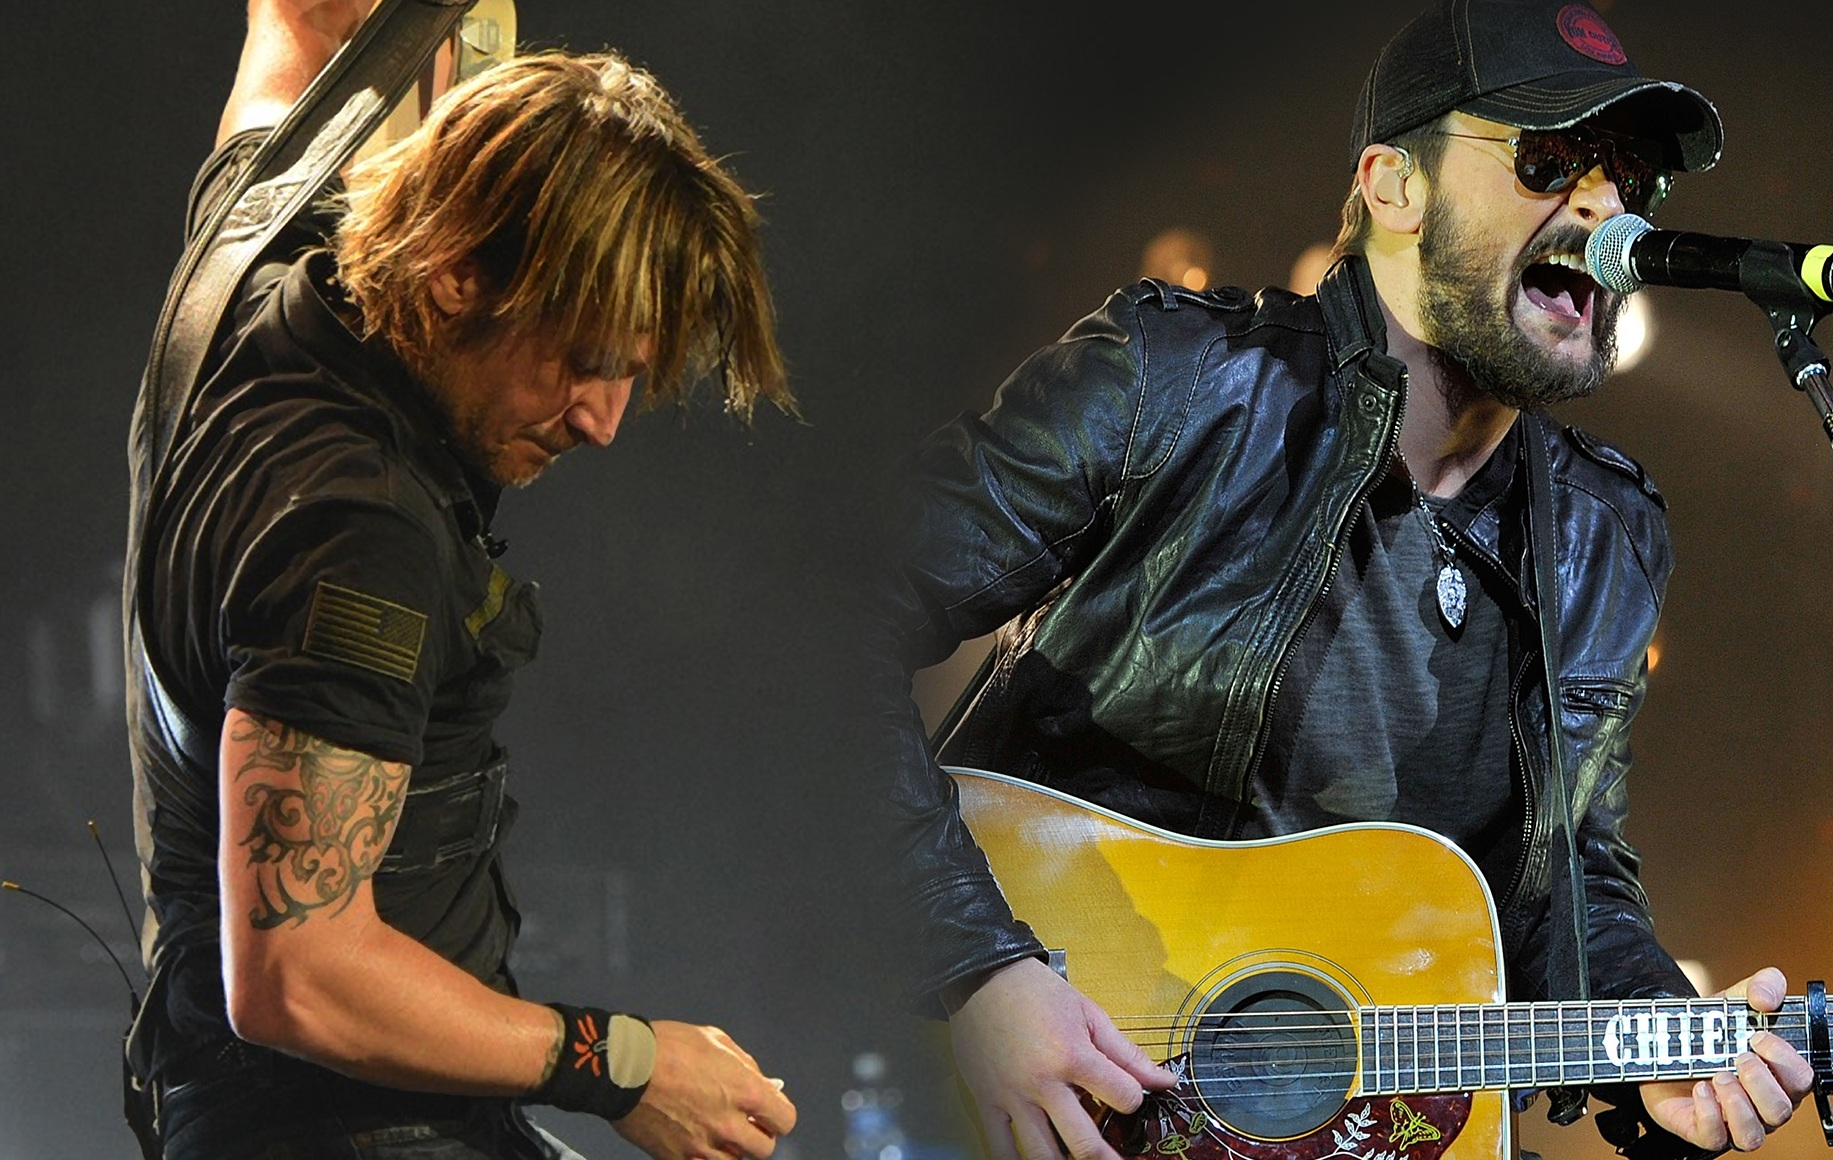 Raise 'Em Up Keith Urban feat. Eric Church Going for Adds Jan. 26th